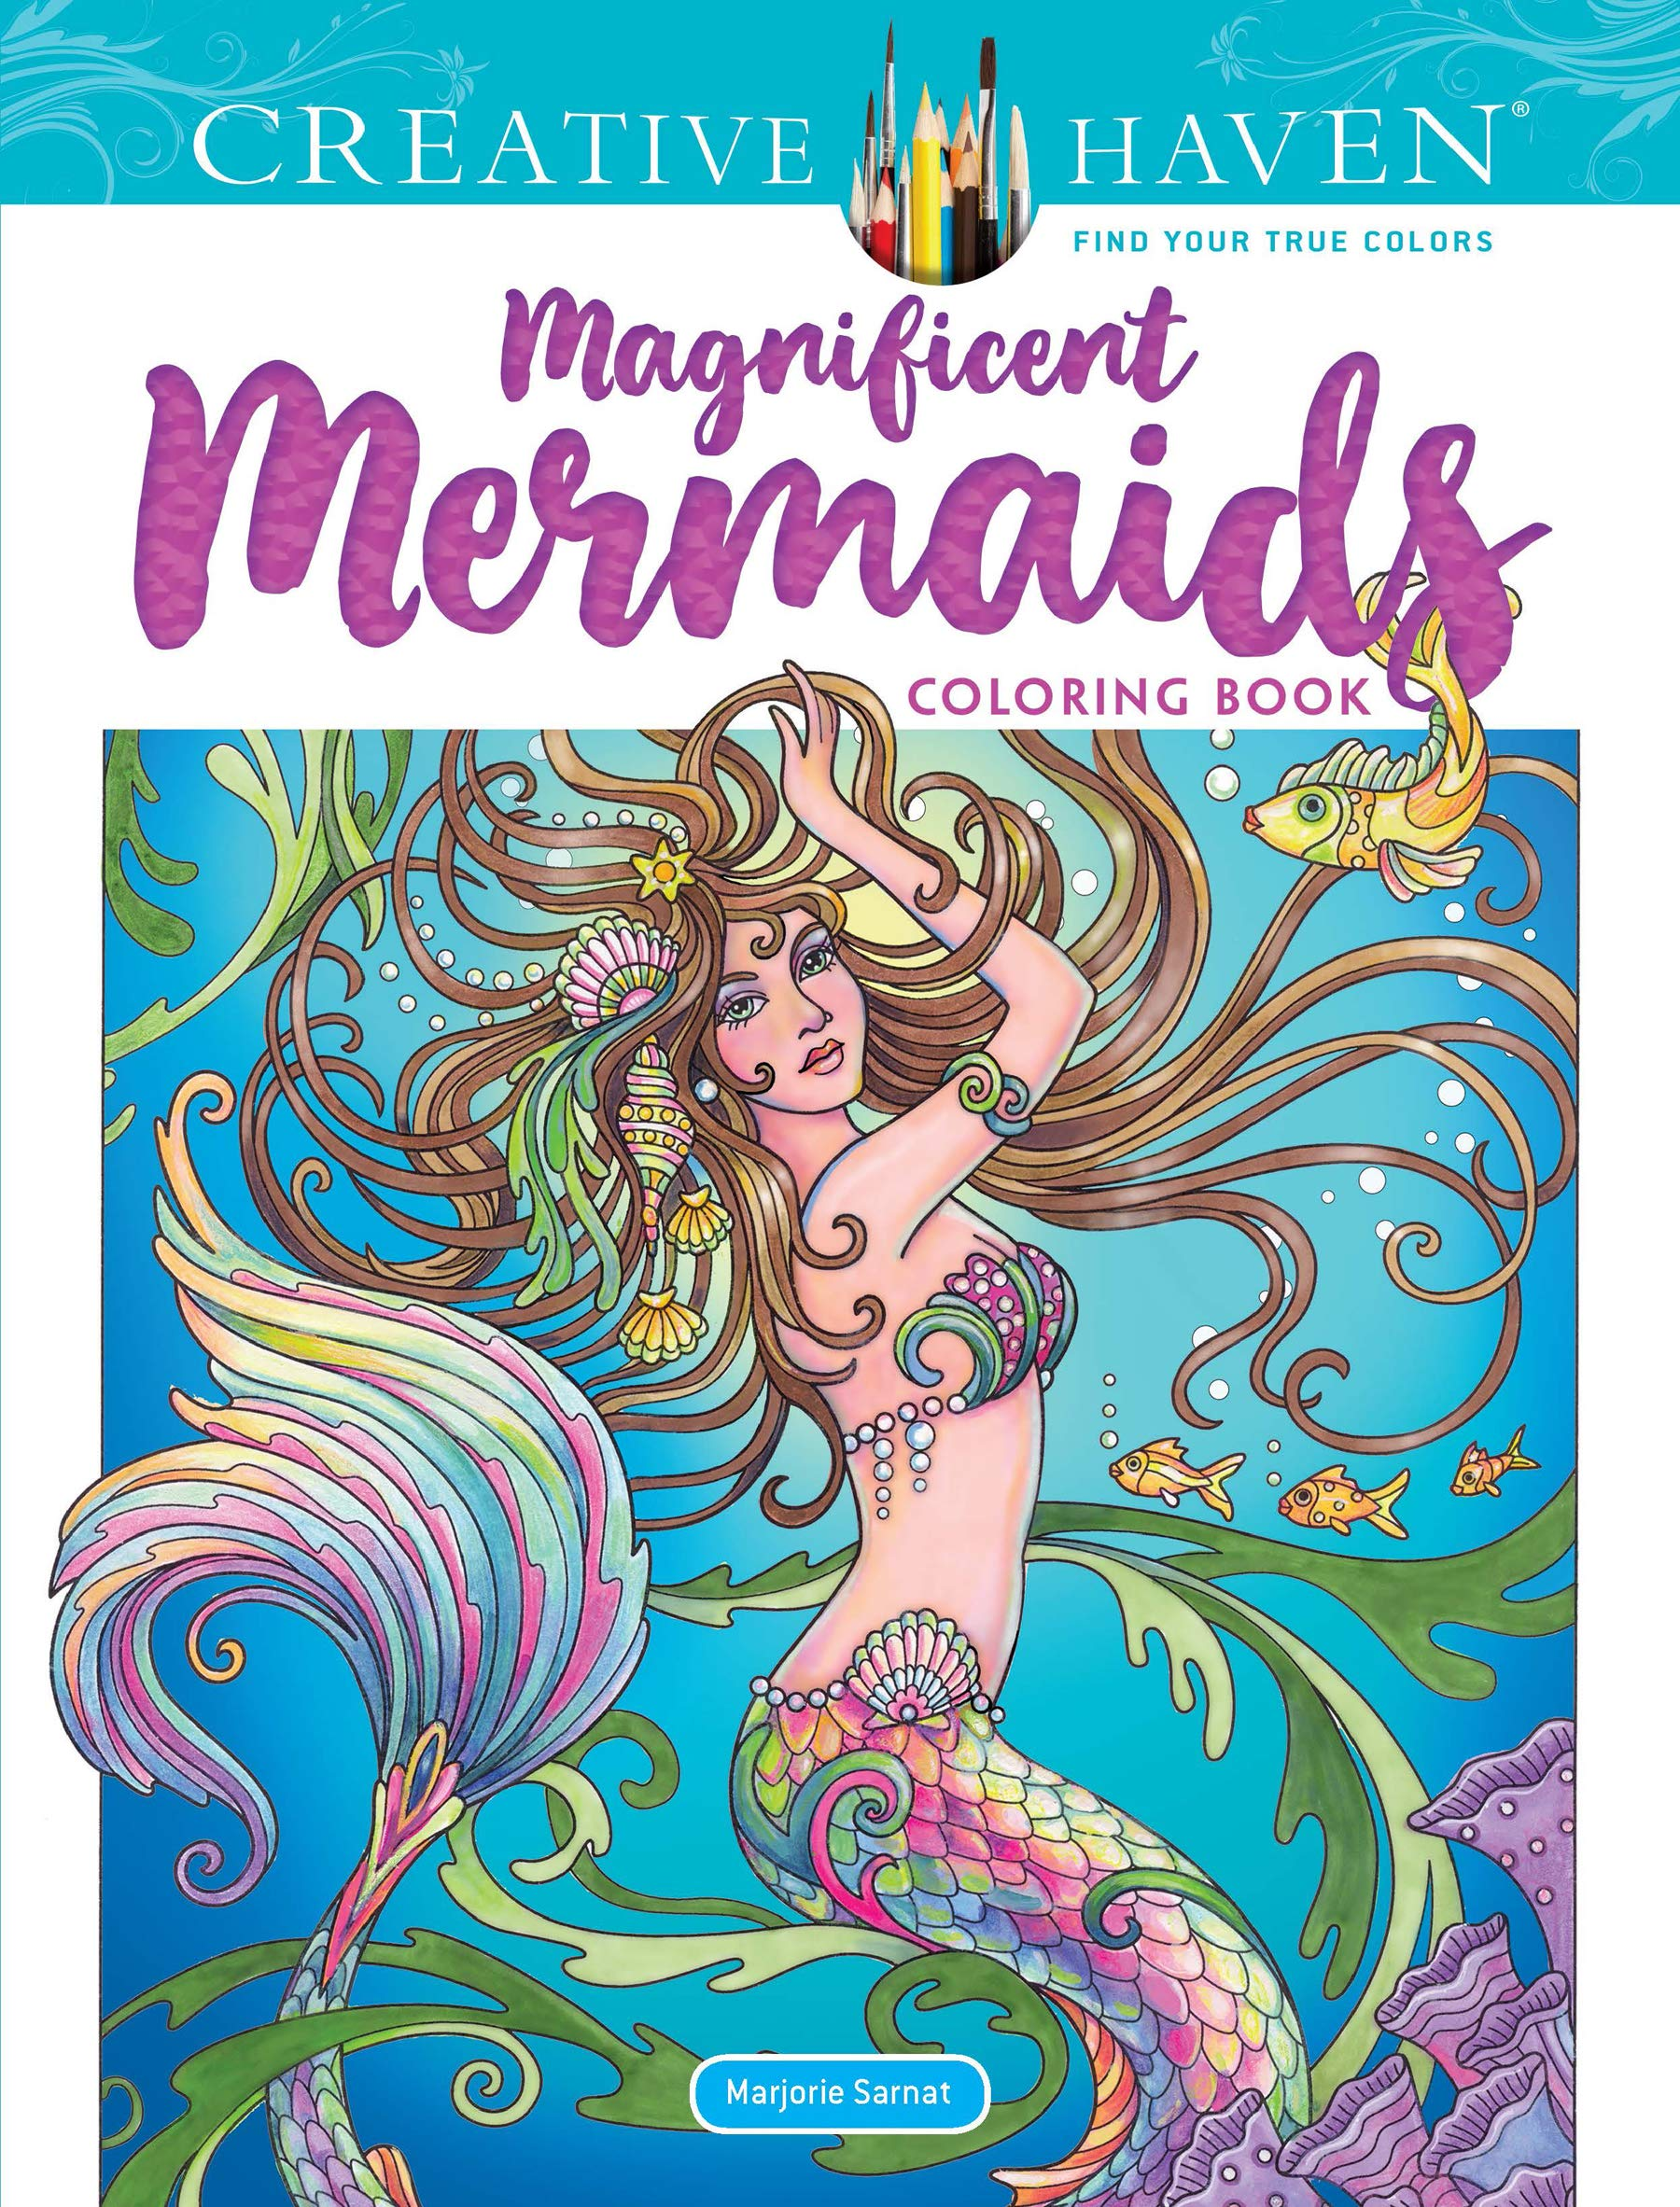 - Amazon.com: Creative Haven Magnificent Mermaids Coloring Book